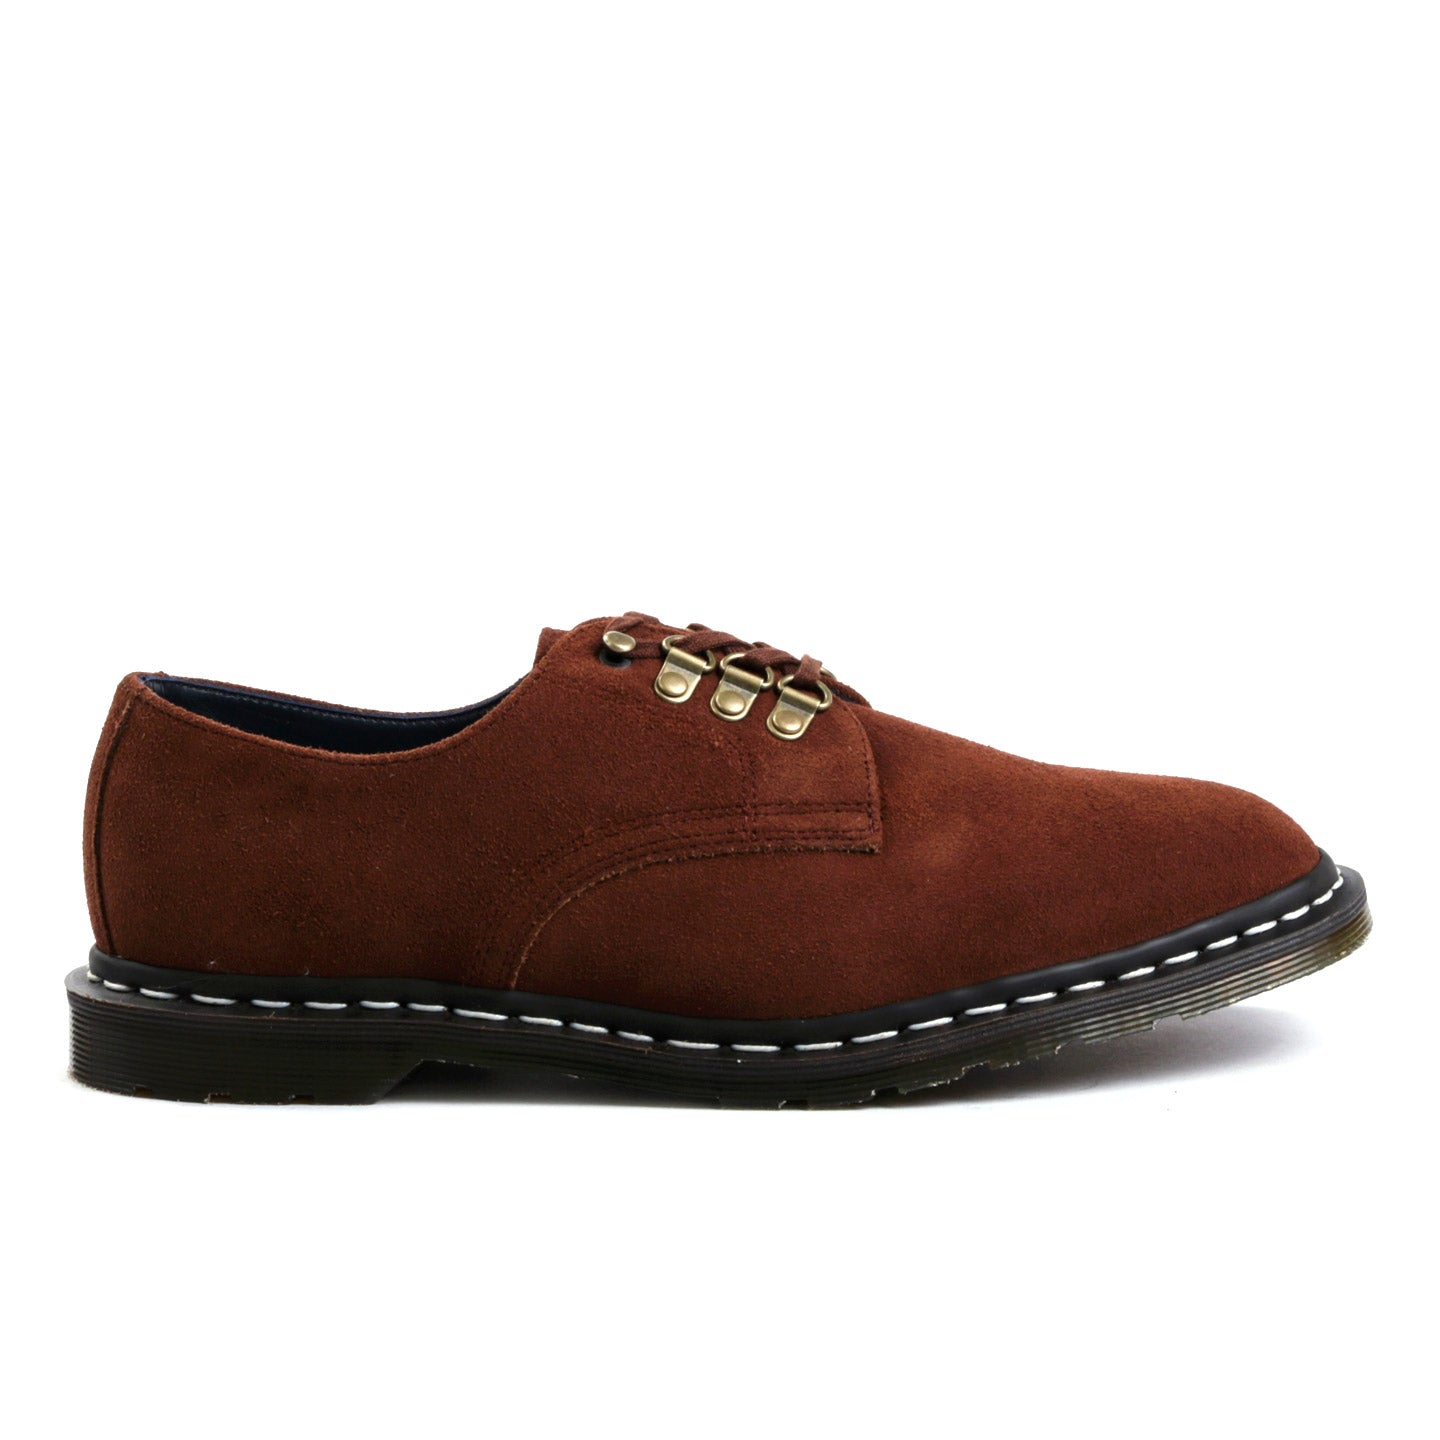 DR. MARTENS NANAMICA MIE PLYMOUTH OFFICER SHOE POLO BROWN HI SUEDE WP